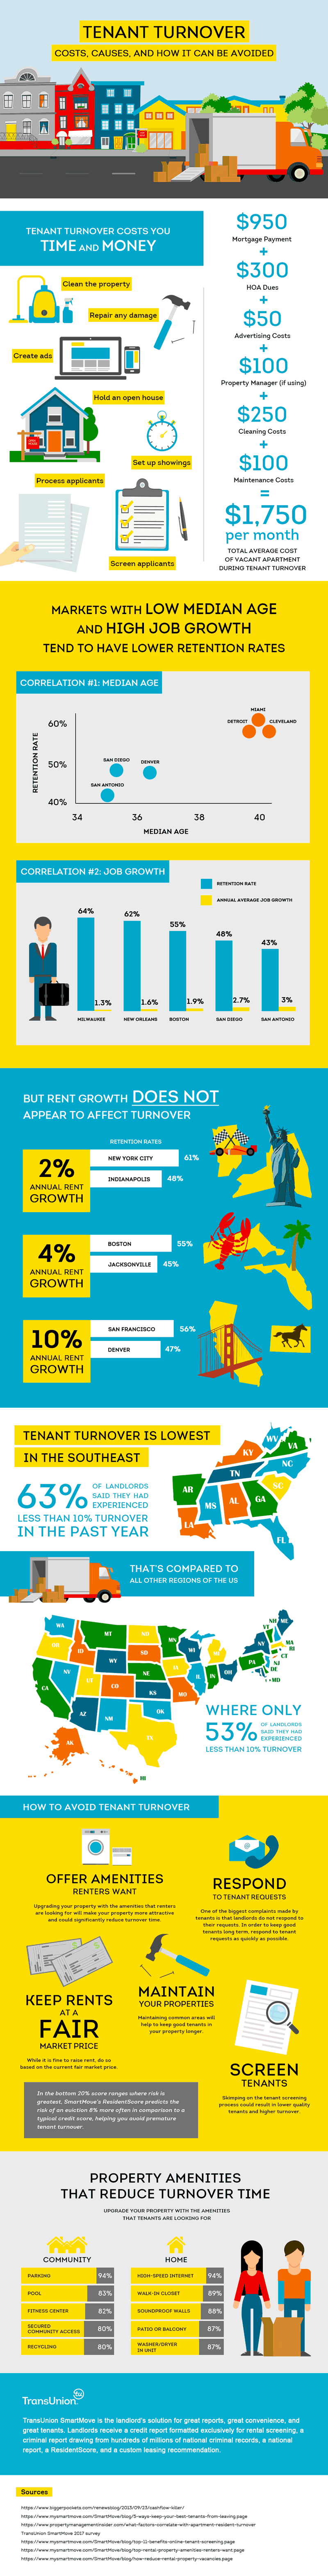 Tenant Turnover Costs And How to Avoid [INFOGRAPHIC]